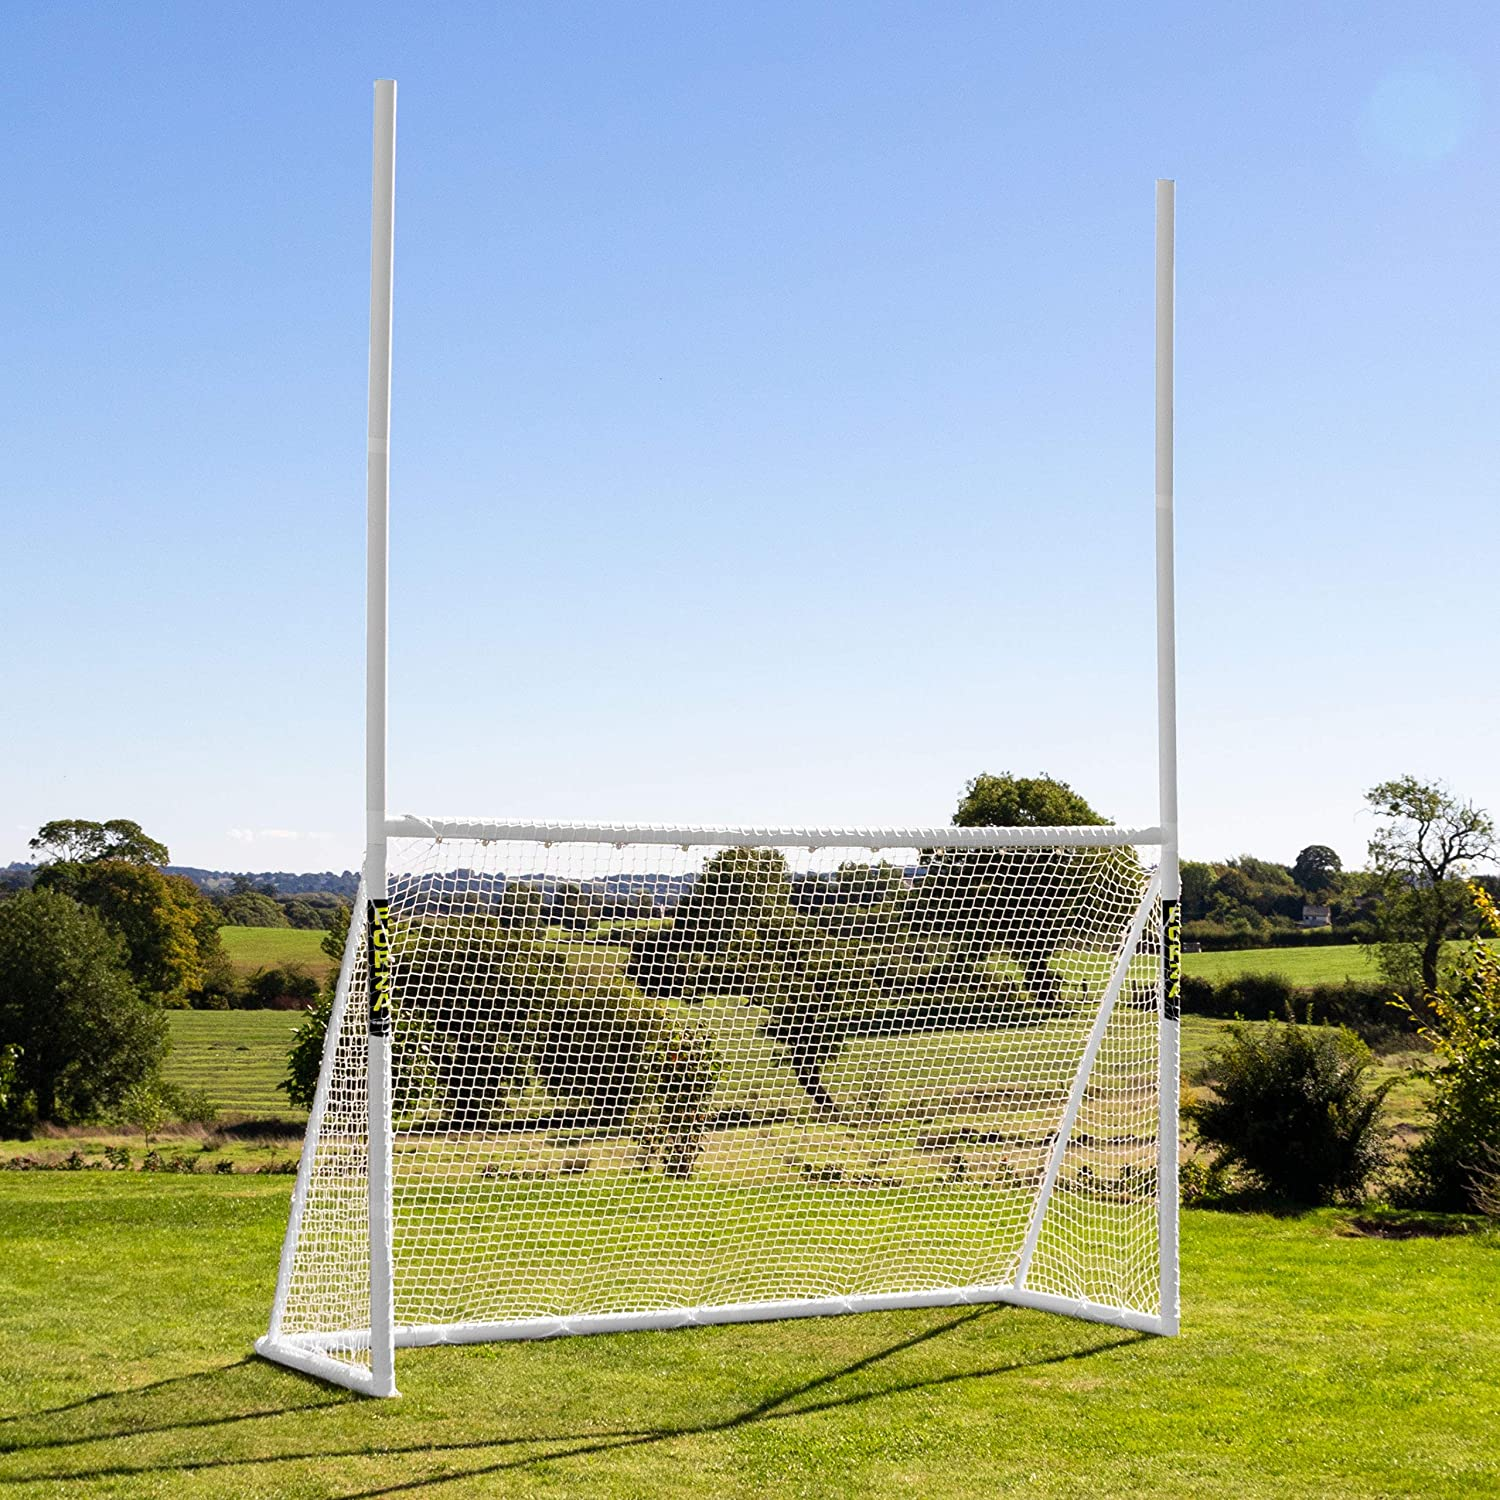 Net World Sports Choose Your Goal Size FORZA Steel42 Soccer Goal - Solidify Your Soccer Skills with This Lightweight Steel Soccer Goal